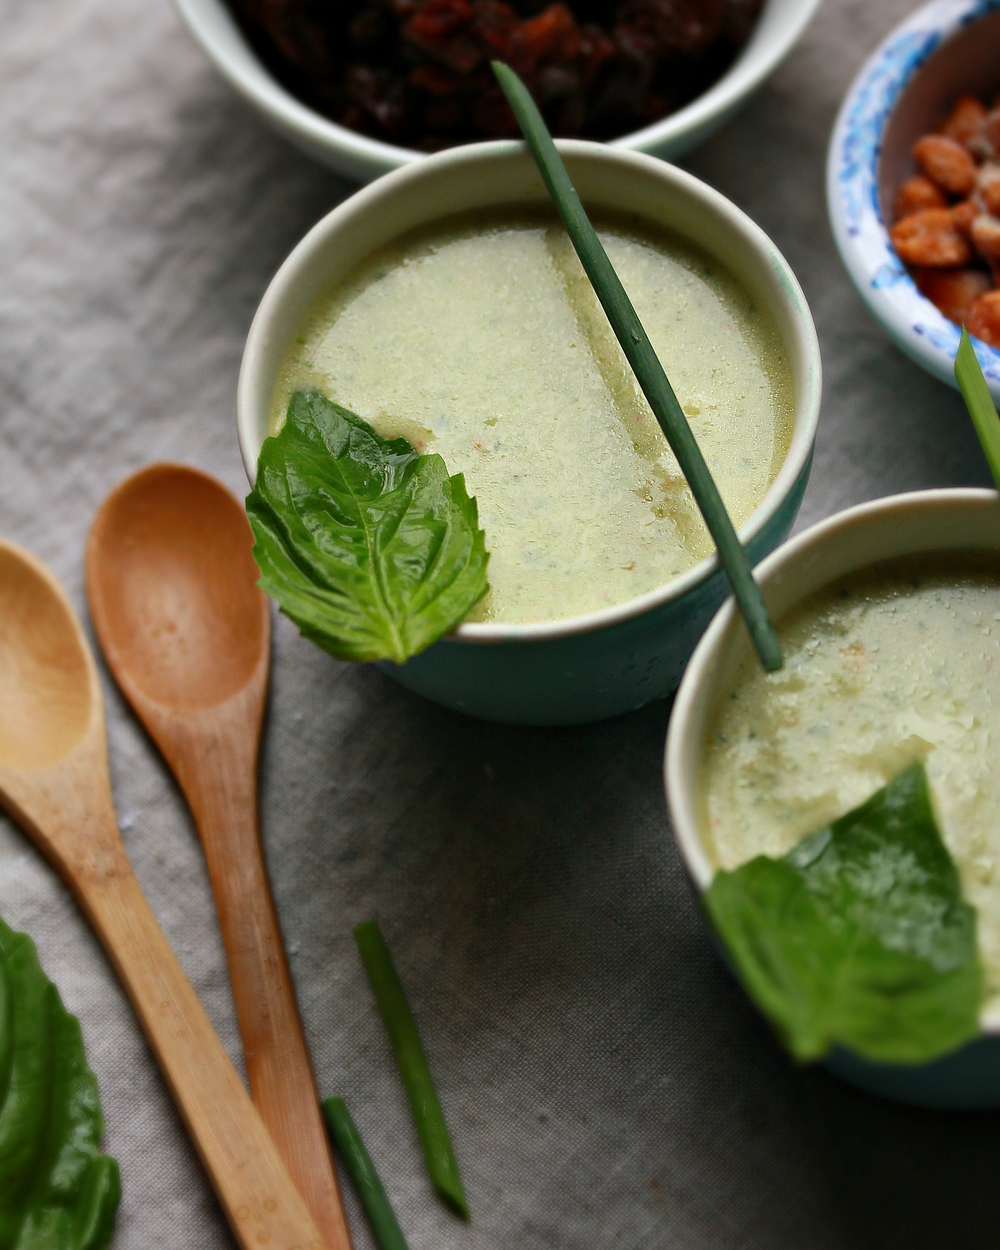 © Cold Cucumber and Yogurt Soup by Dena T Bray